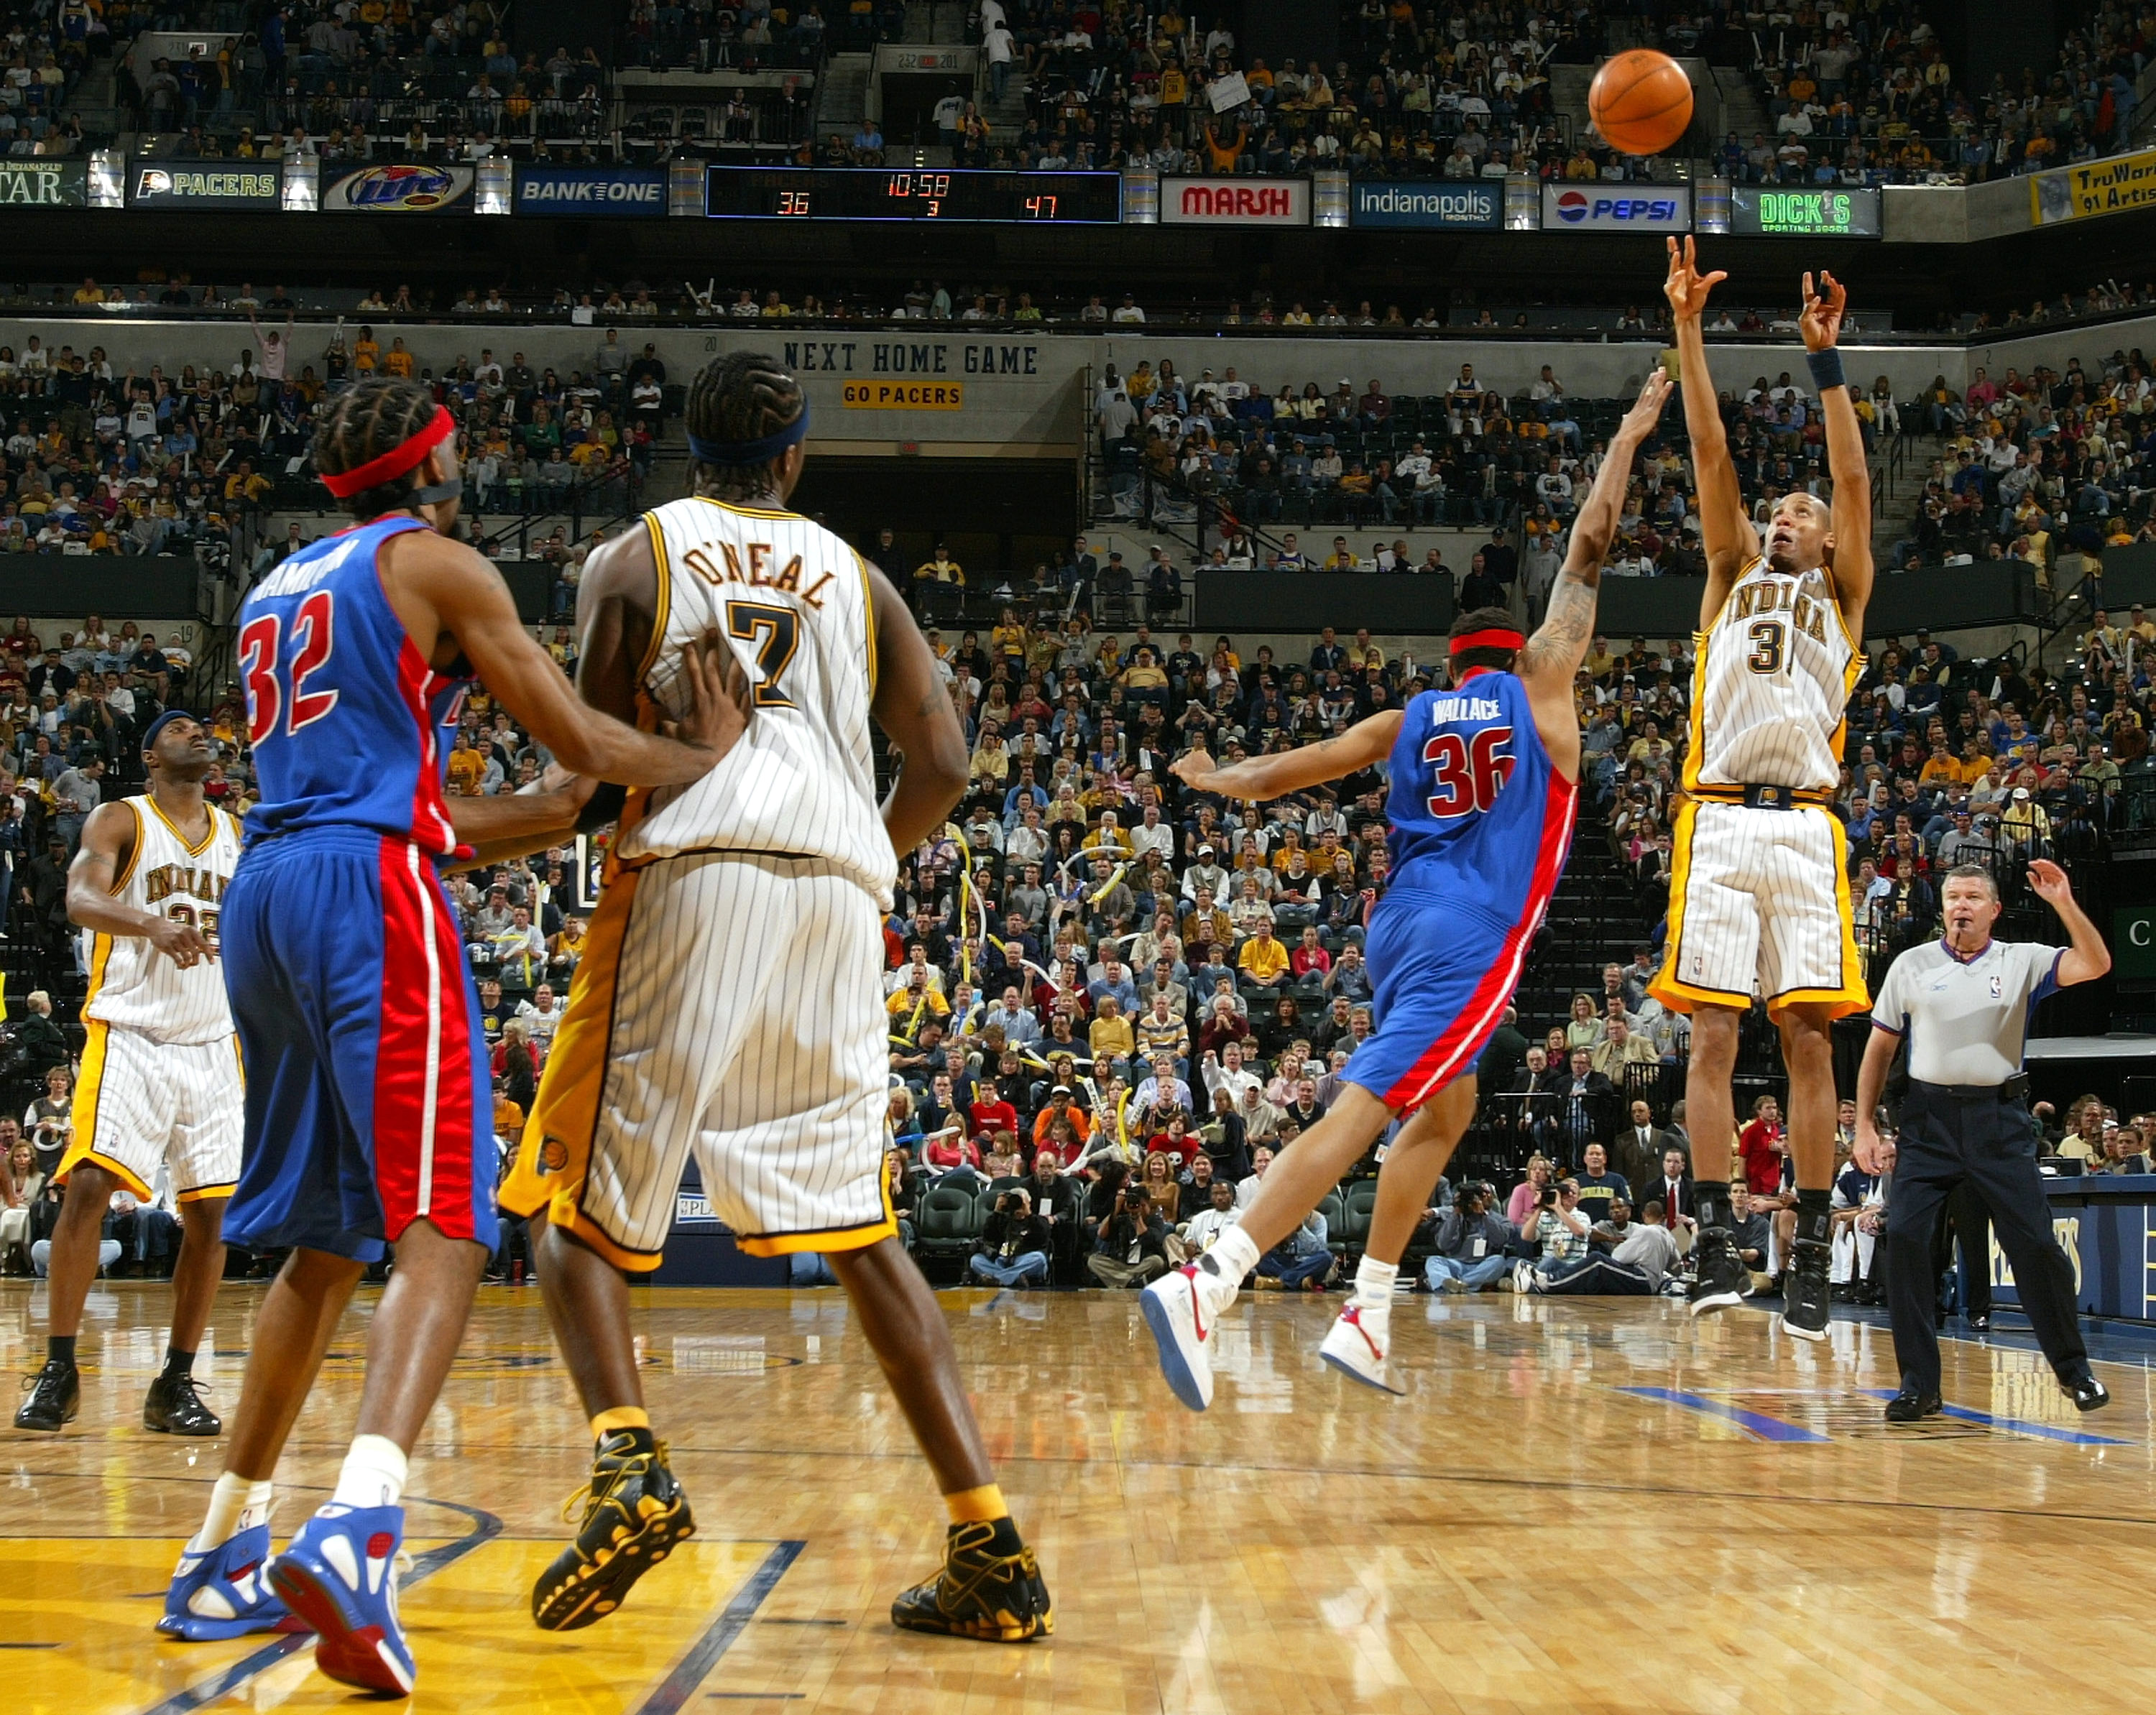 INDIANAPOLIS - MAY 15: Reggie Miller #31 of the the Indiana Pacers tries to get a three point shot off as Rasheed Wallace #36 of the Detroit Pistons defends in Game four of the Eastern Conference Semifinals during the 2005 NBA Playoffs on May 15, 2005 at